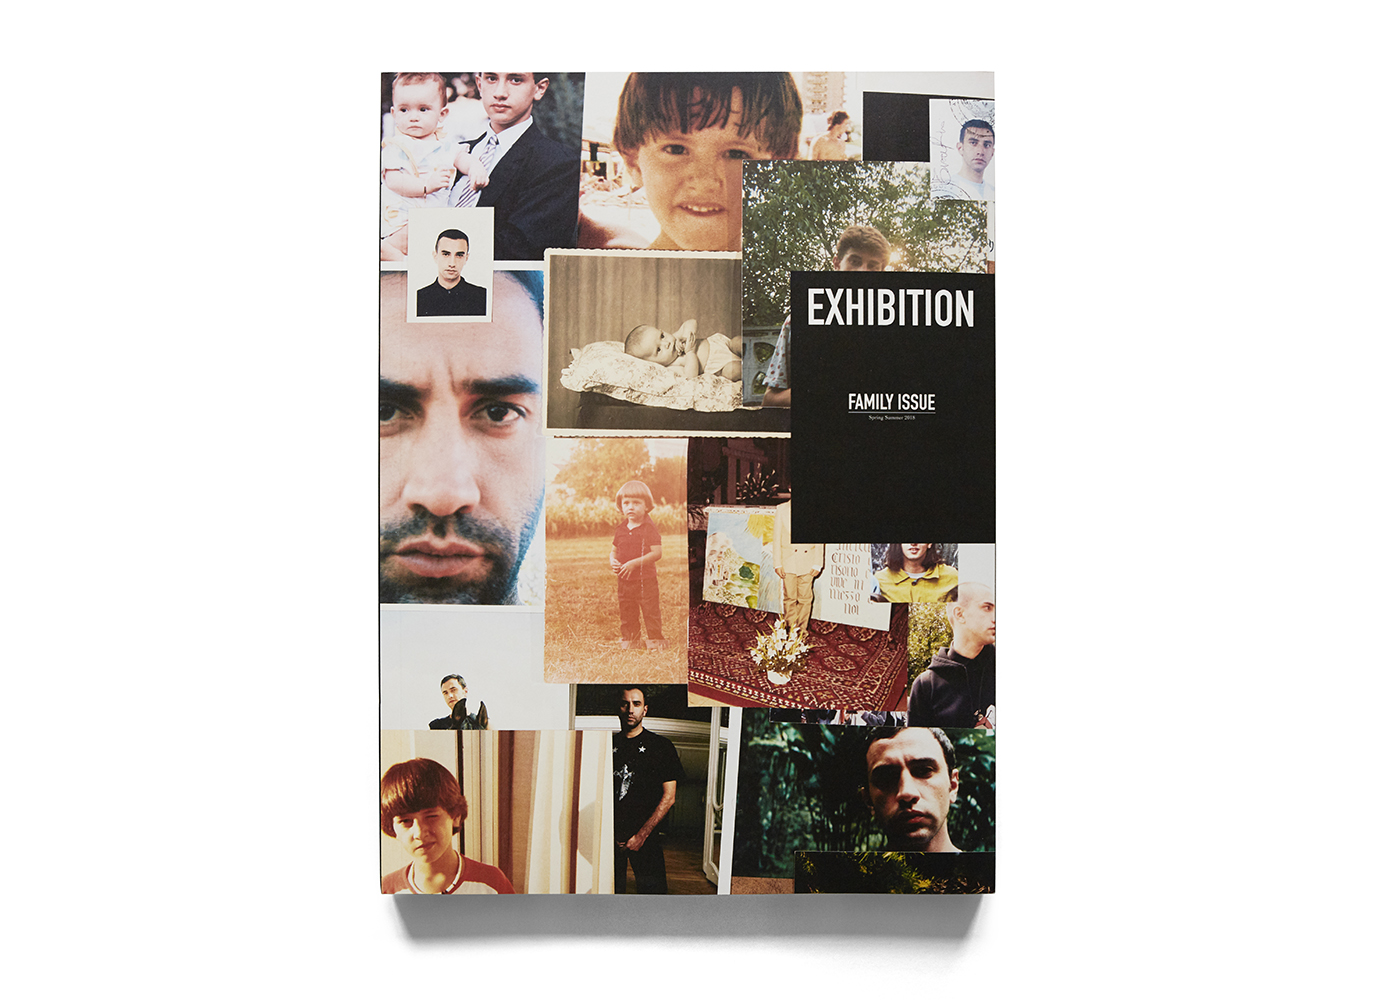 Exhibition Magazine Family Issue